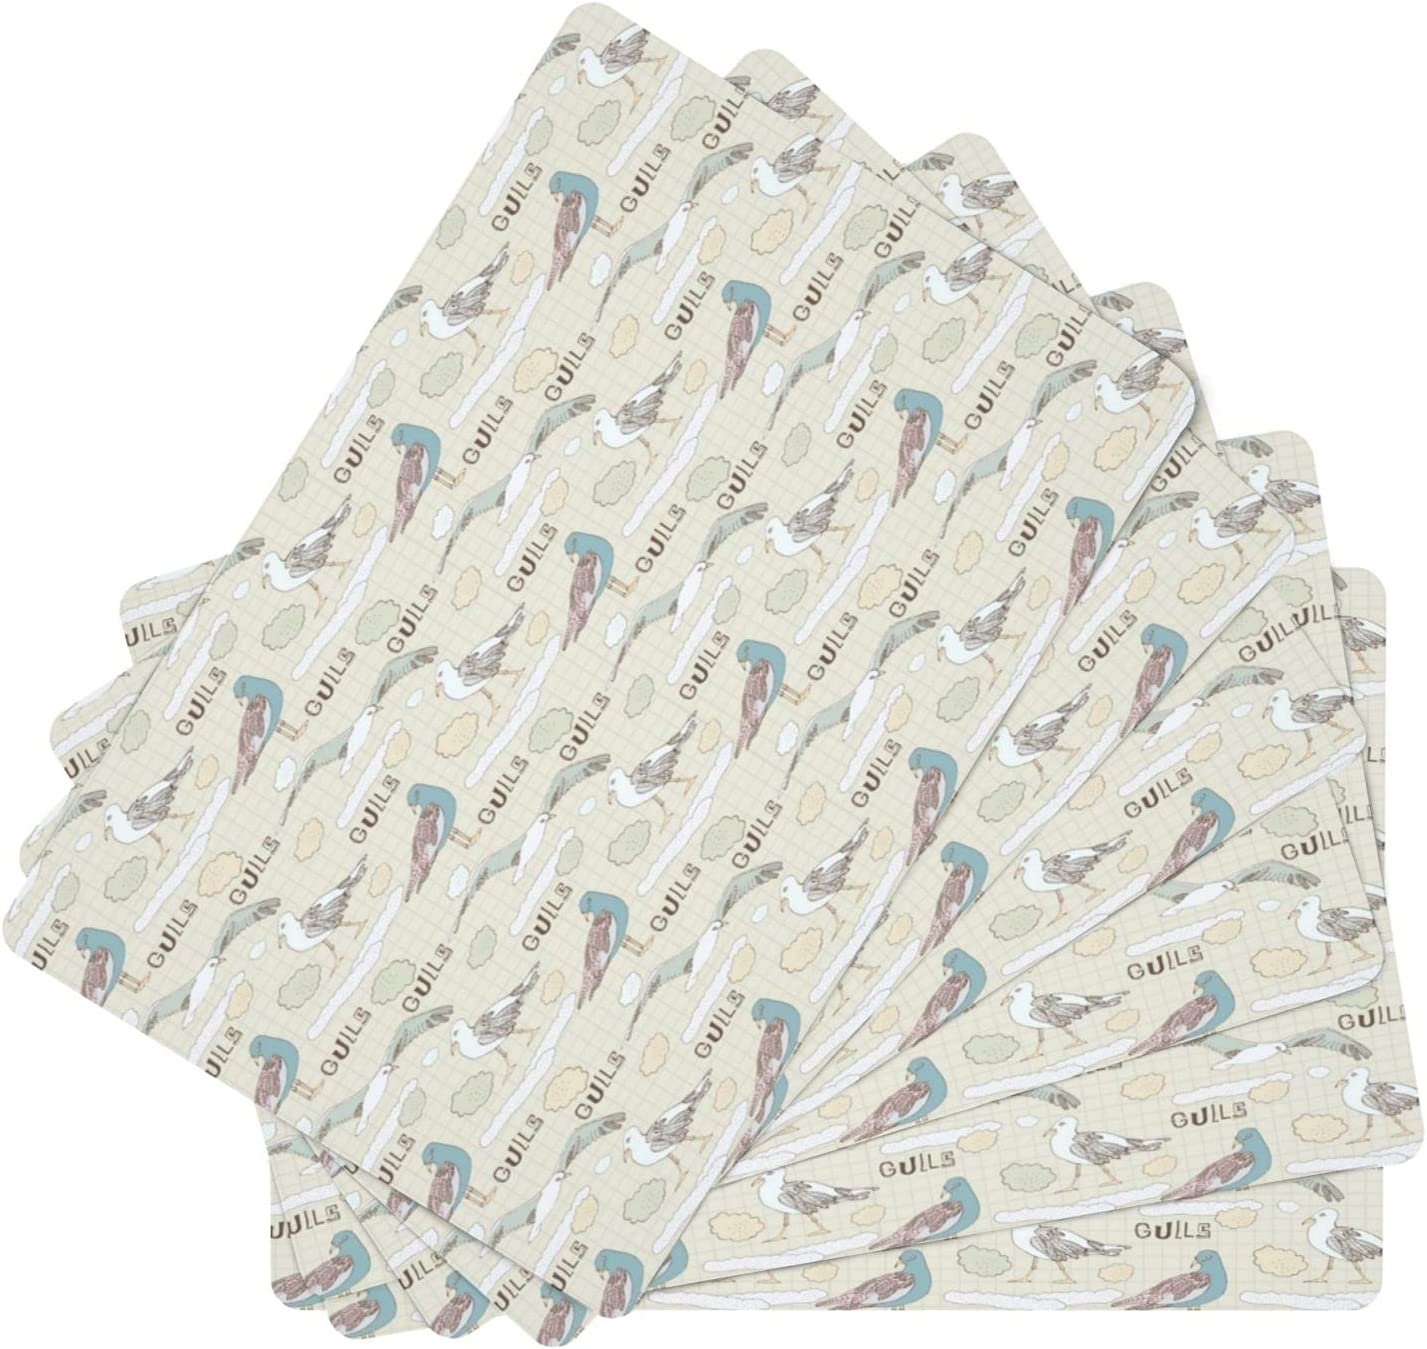 favorite Seagulls Pattern Background Leather Table Washable Mats Max 56% OFF Set 6 of